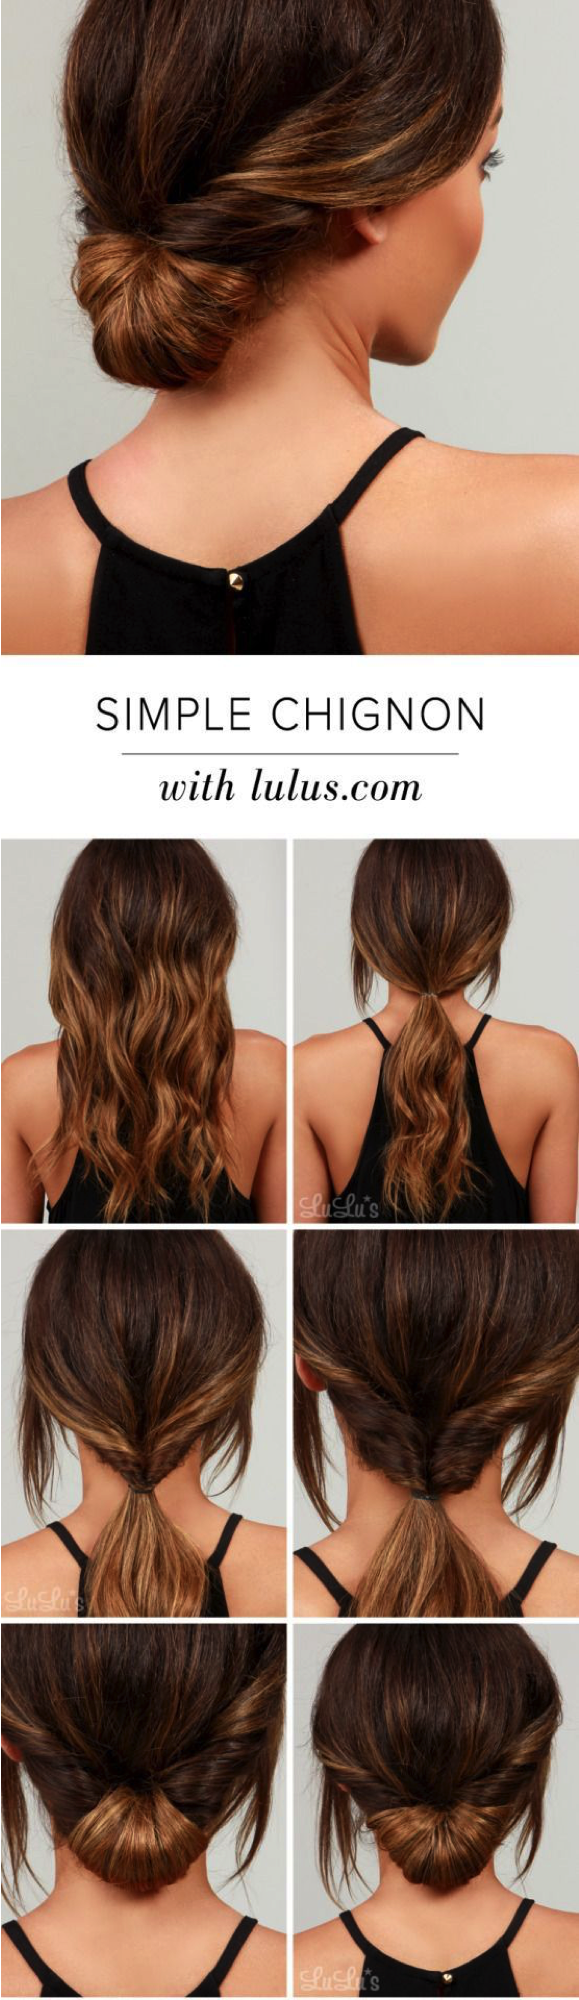 Quick And Easy Hairstyles For Office Uniformes Rossana